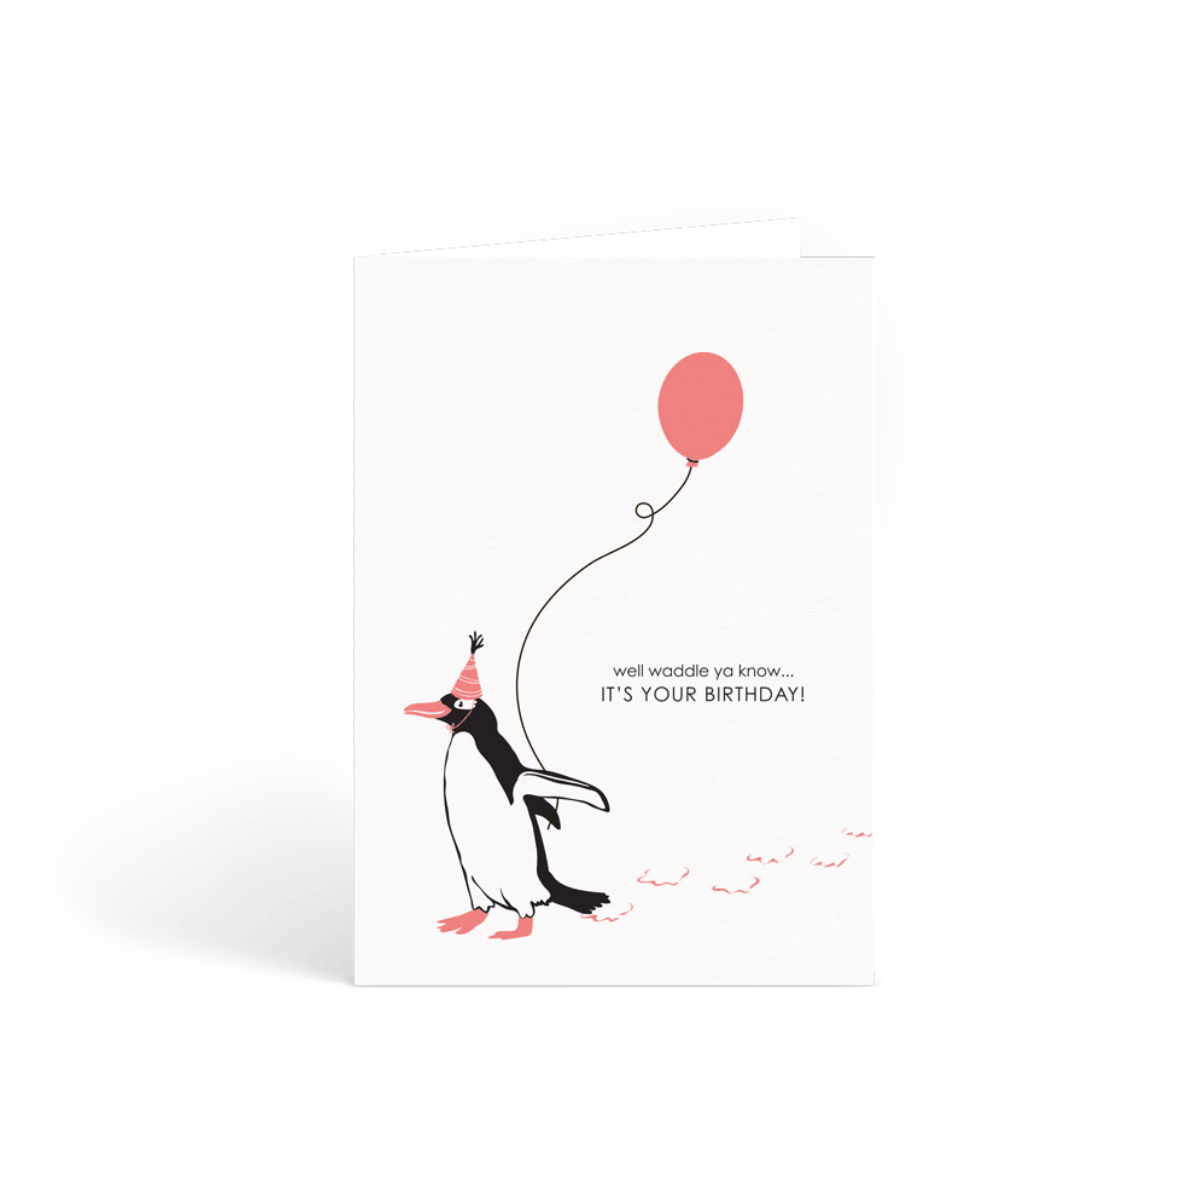 Https%3a%2f%2fwww.papier.com%2fproduct image%2f3481%2f2%2fbirthday penguin 931 front 1453910844.png?ixlib=rb 1.1